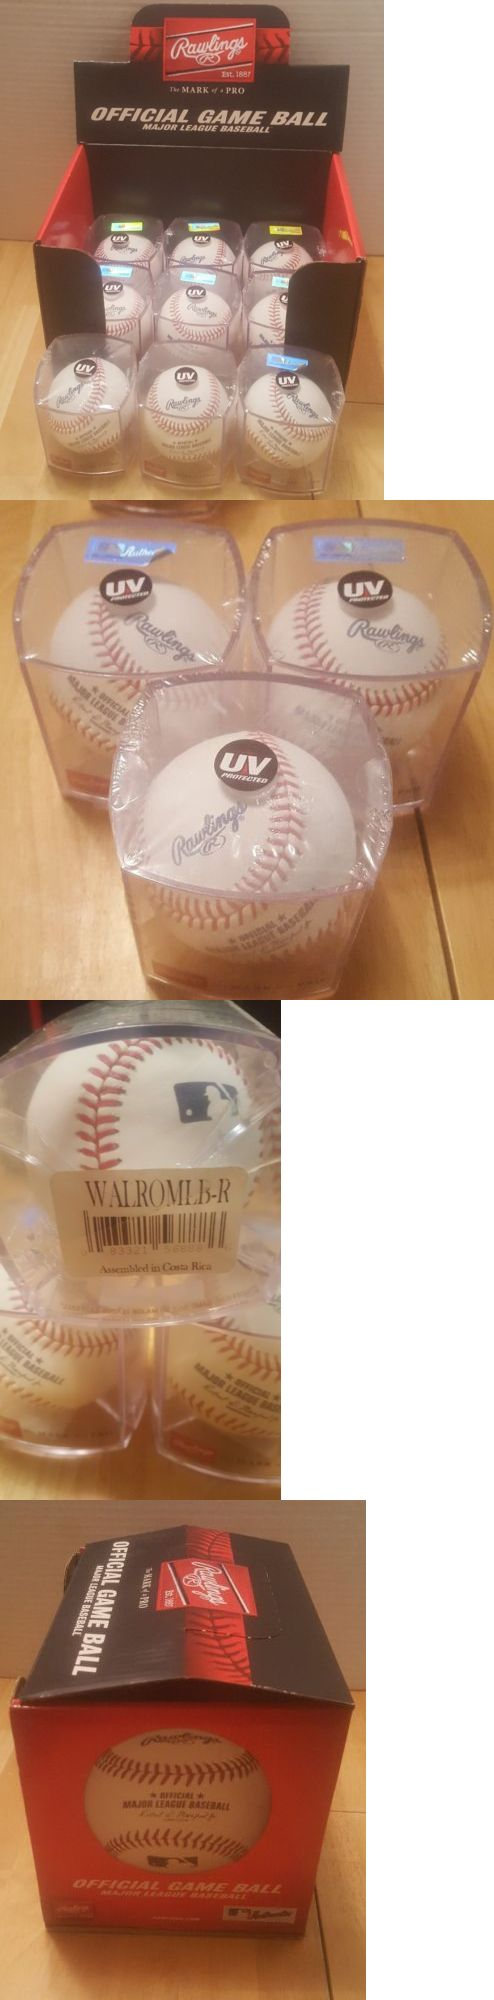 Baseballs 73893: Lot Of Rawlings Official Major League Mlb Baseball Uv Display Cube Waromlb-R -> BUY IT NOW ONLY: $88 on eBay!